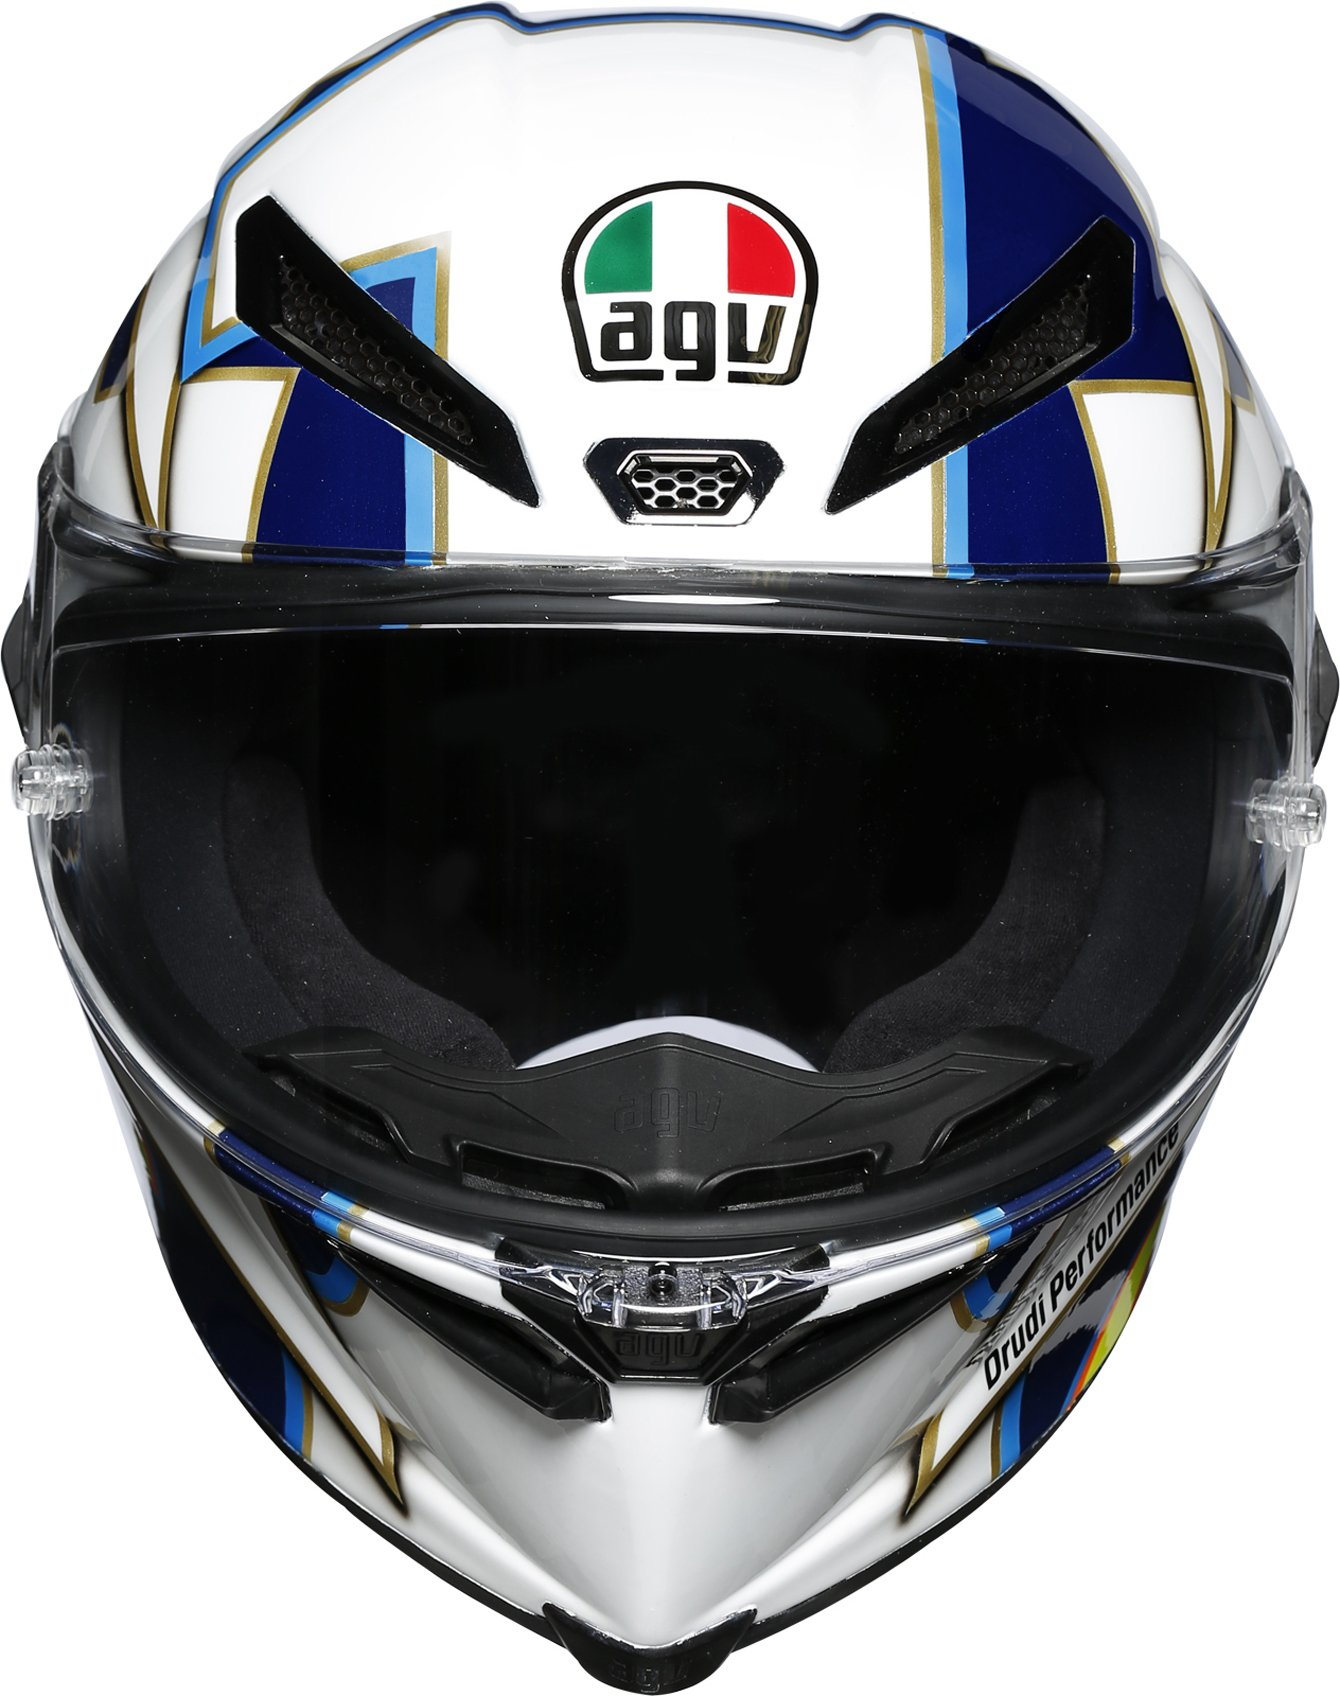 AGV Pista GP RR World Title 2003 Limited Edition 3